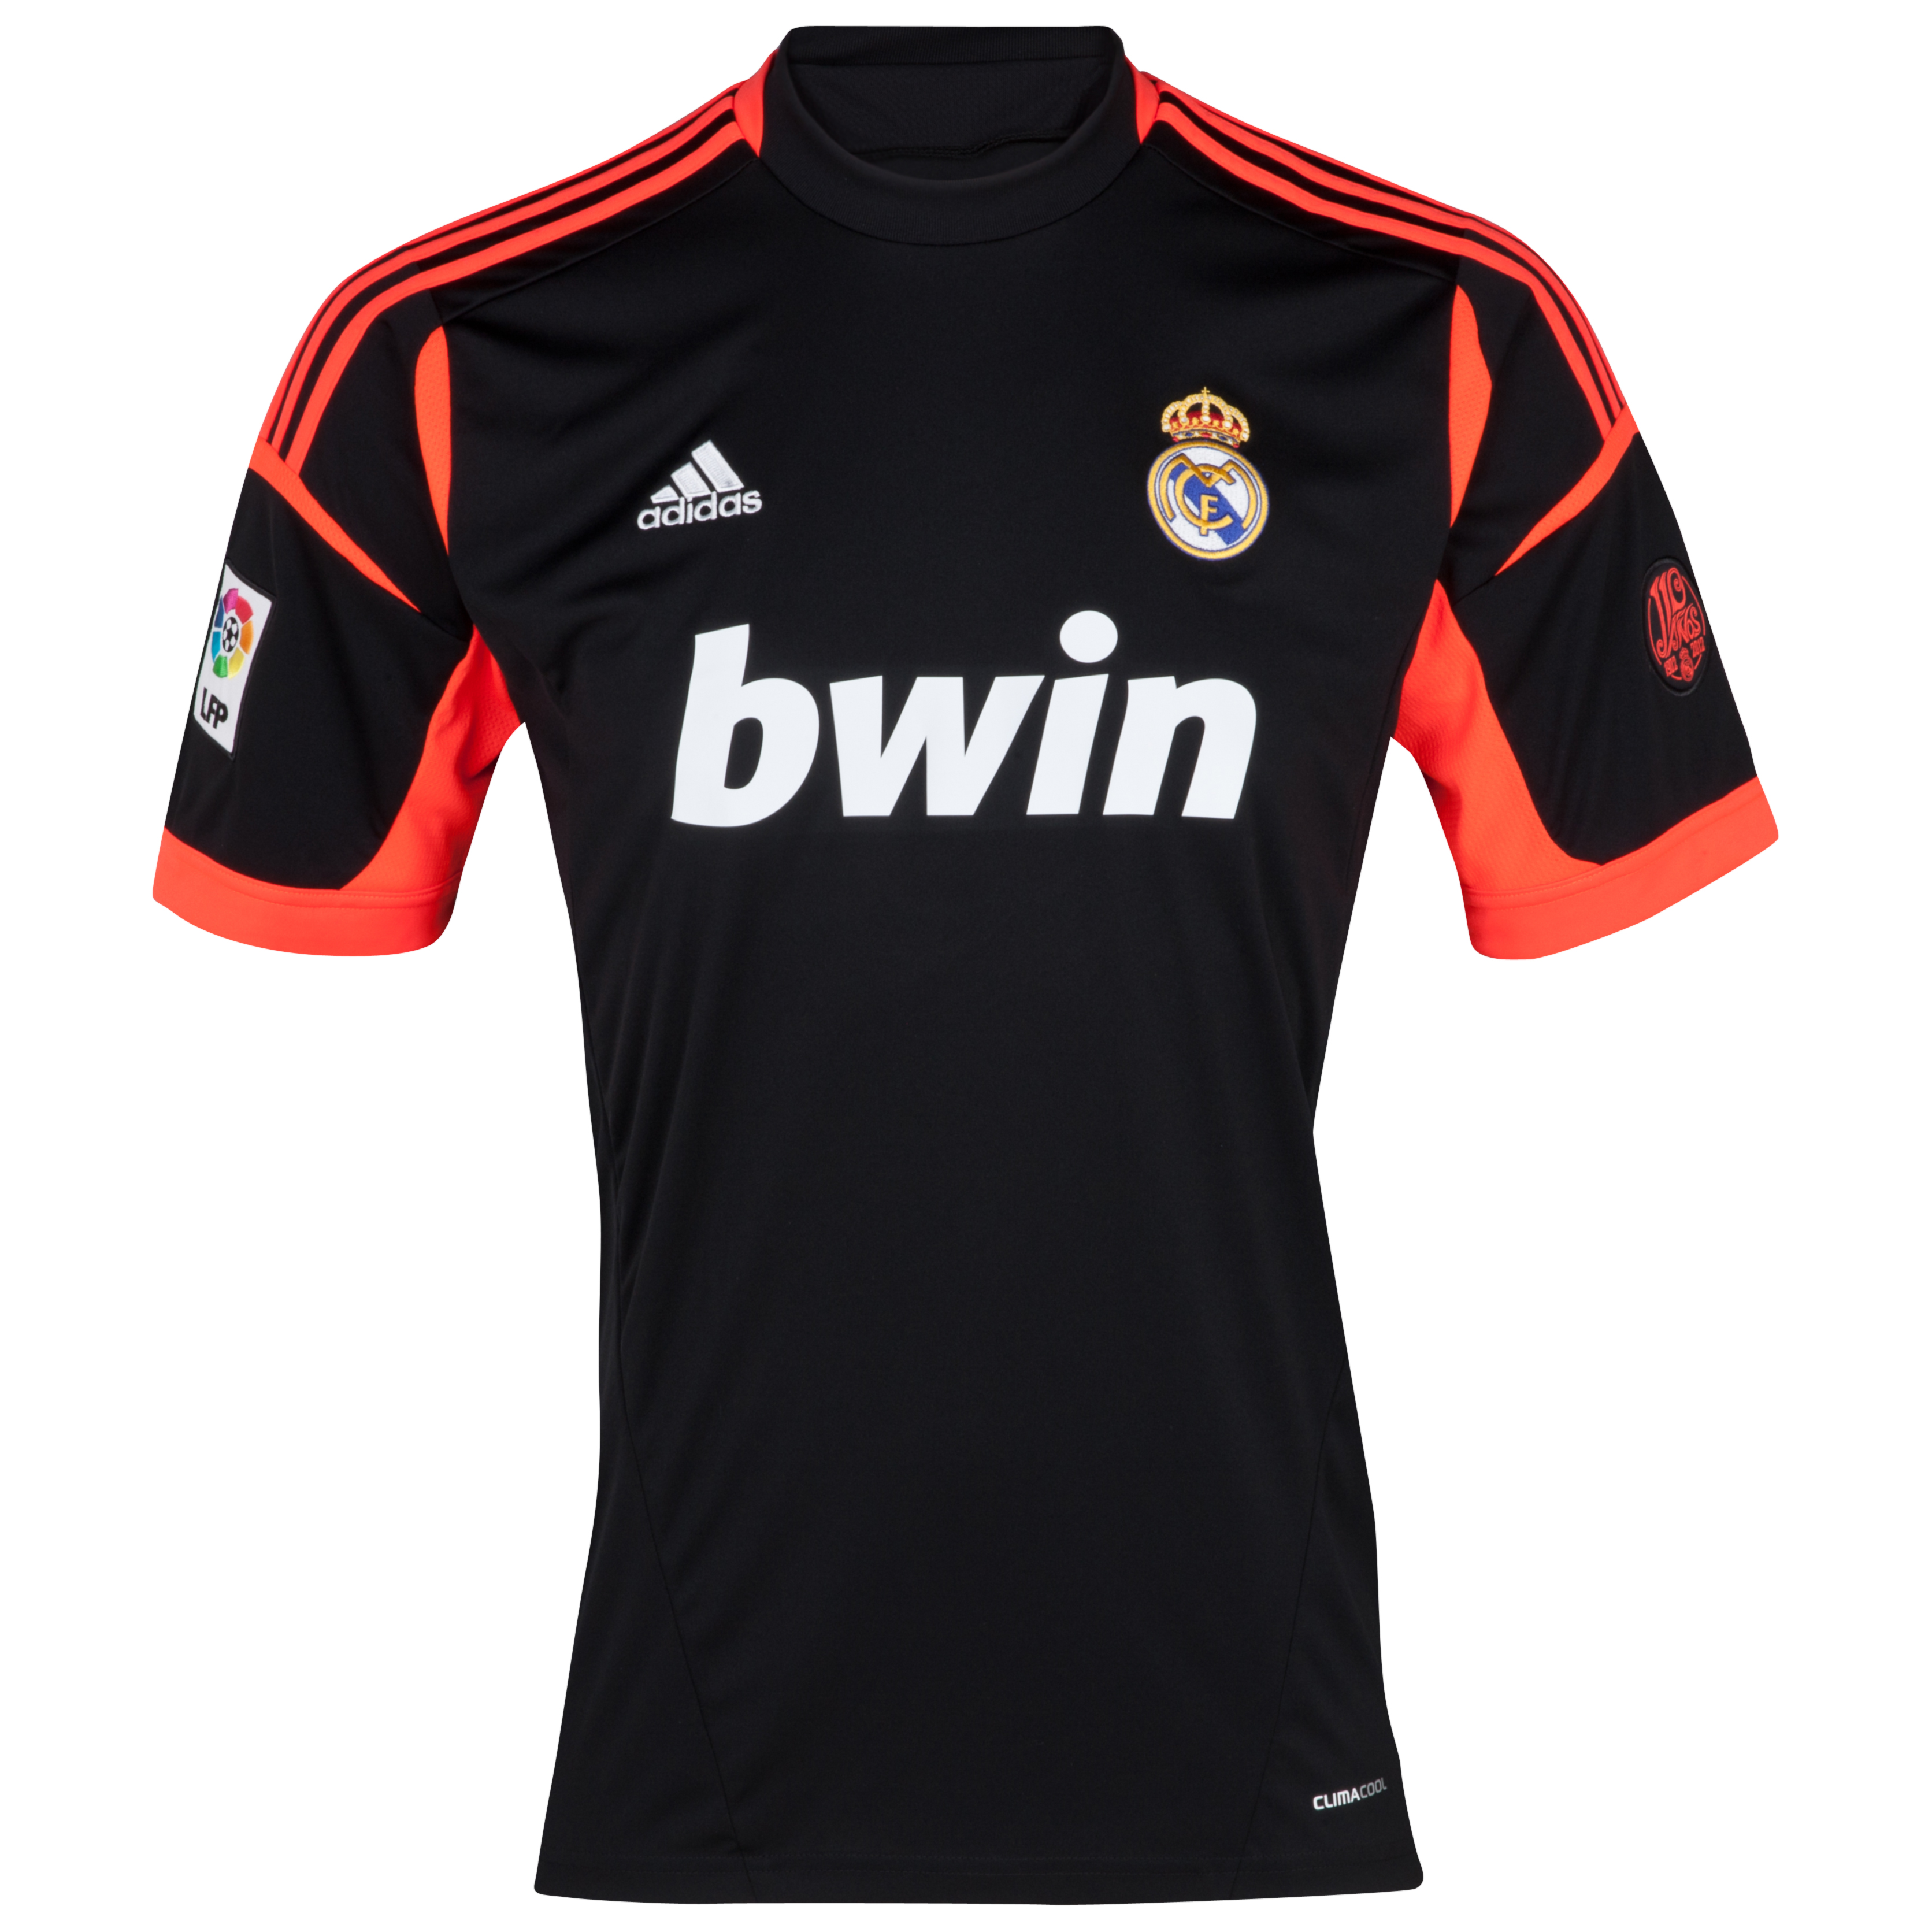 Real Madrid Away Goalkeeper Shirt 2012/13 Youths